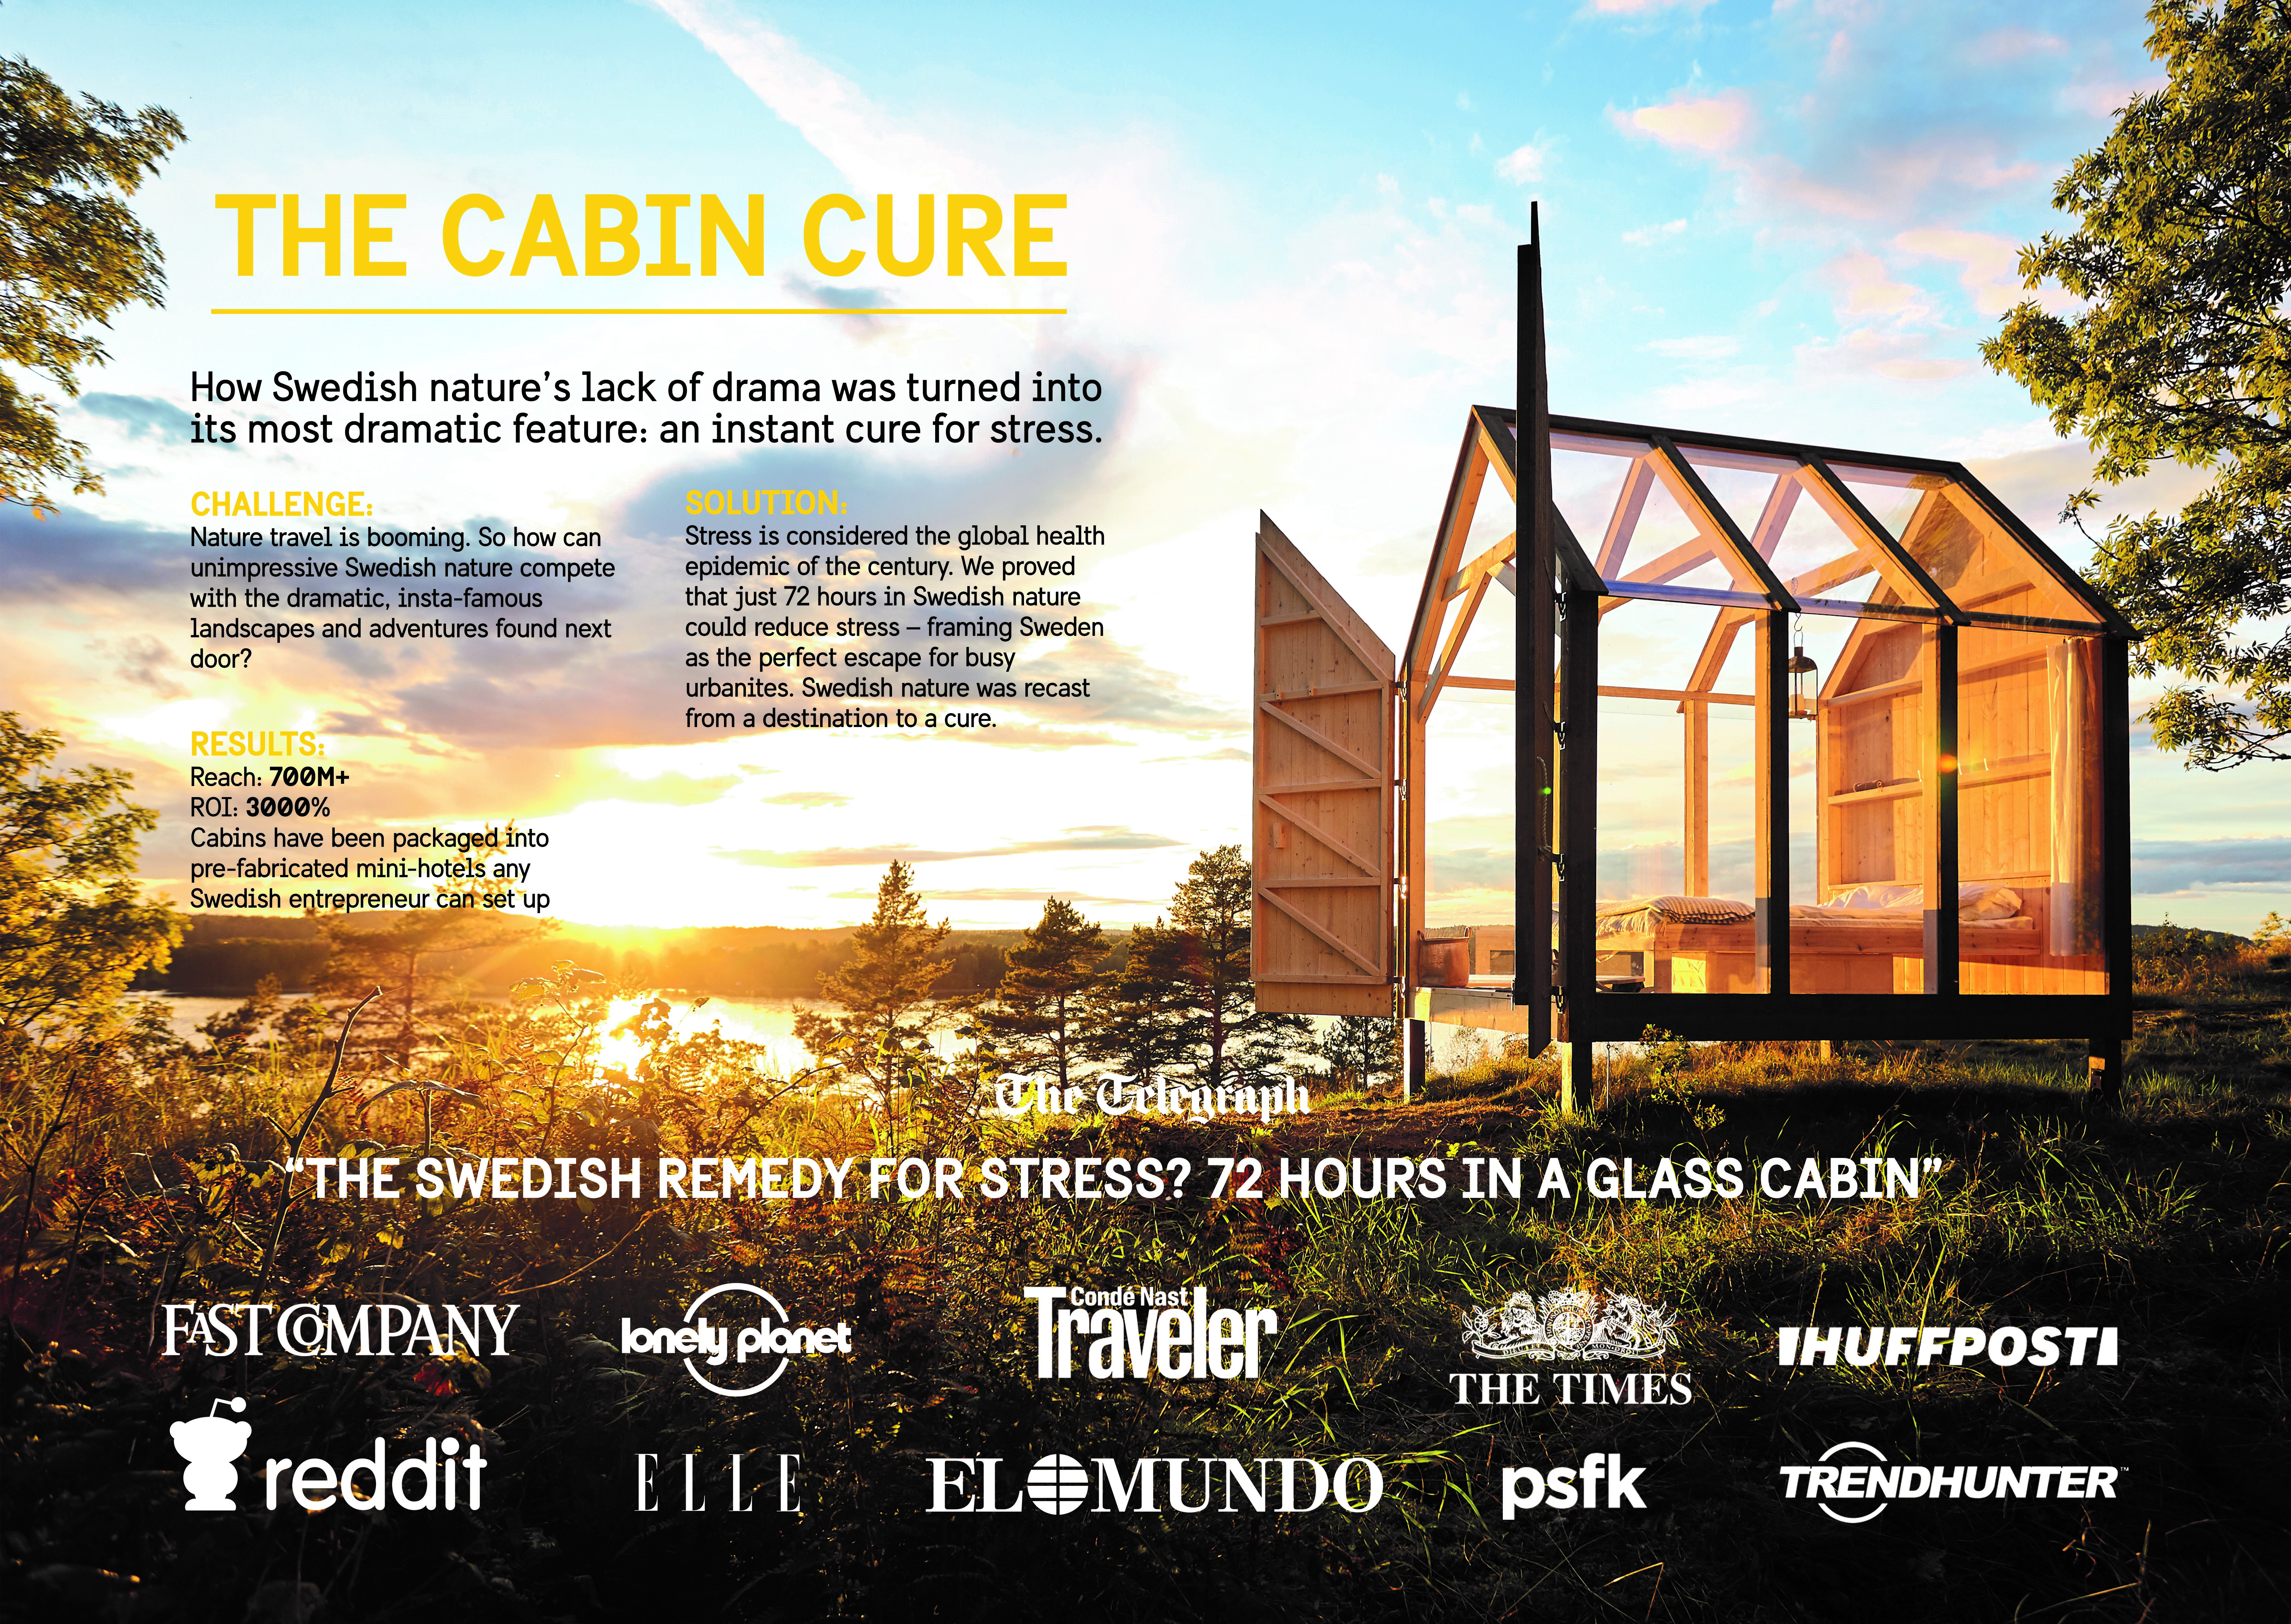 Image Media for The Cabin Cure